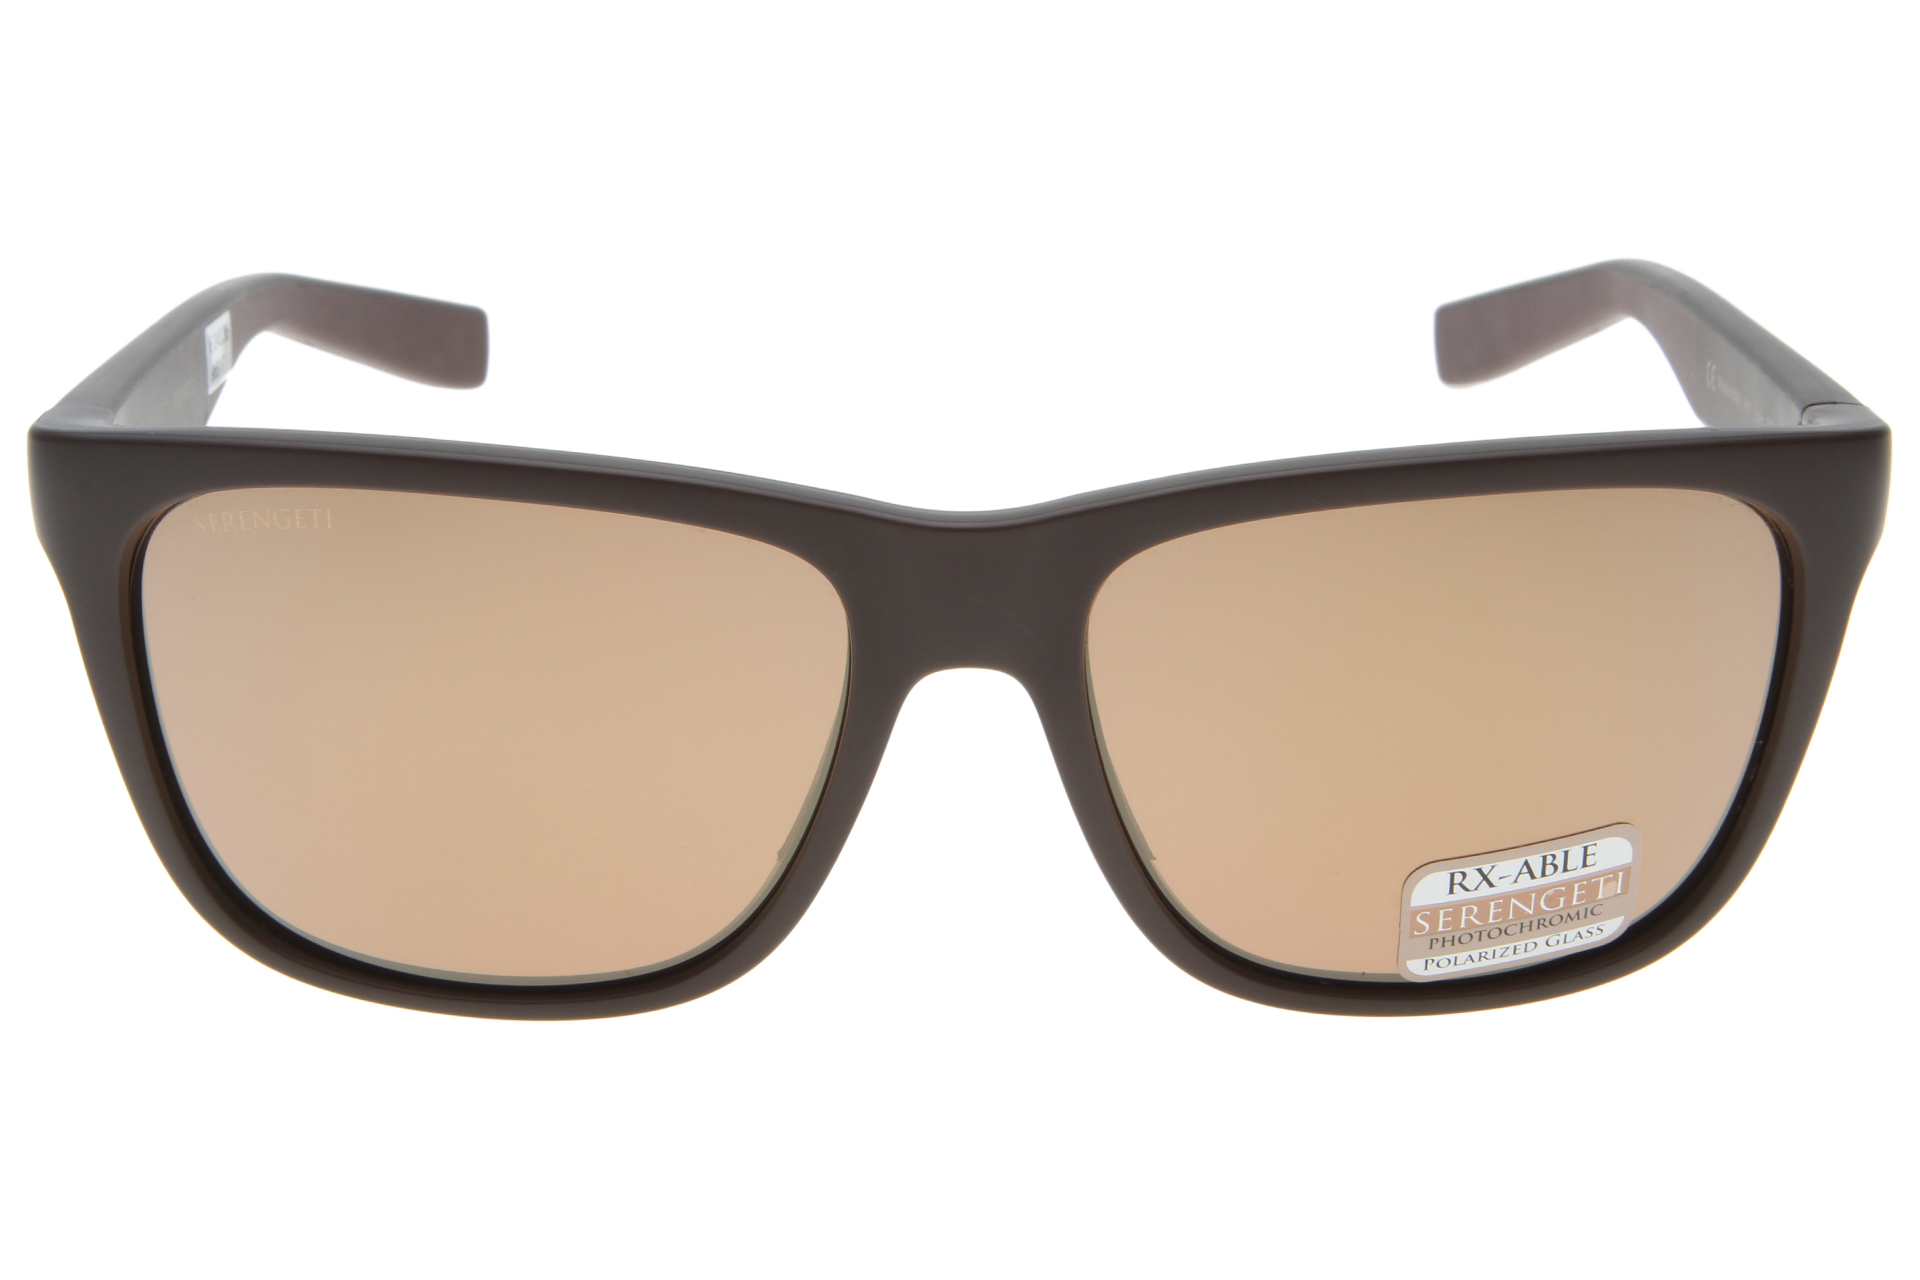 Serengeti Livio 8684 (Sanded Brown/Dark Brown) Gepolariseerd, Spiegelcoating